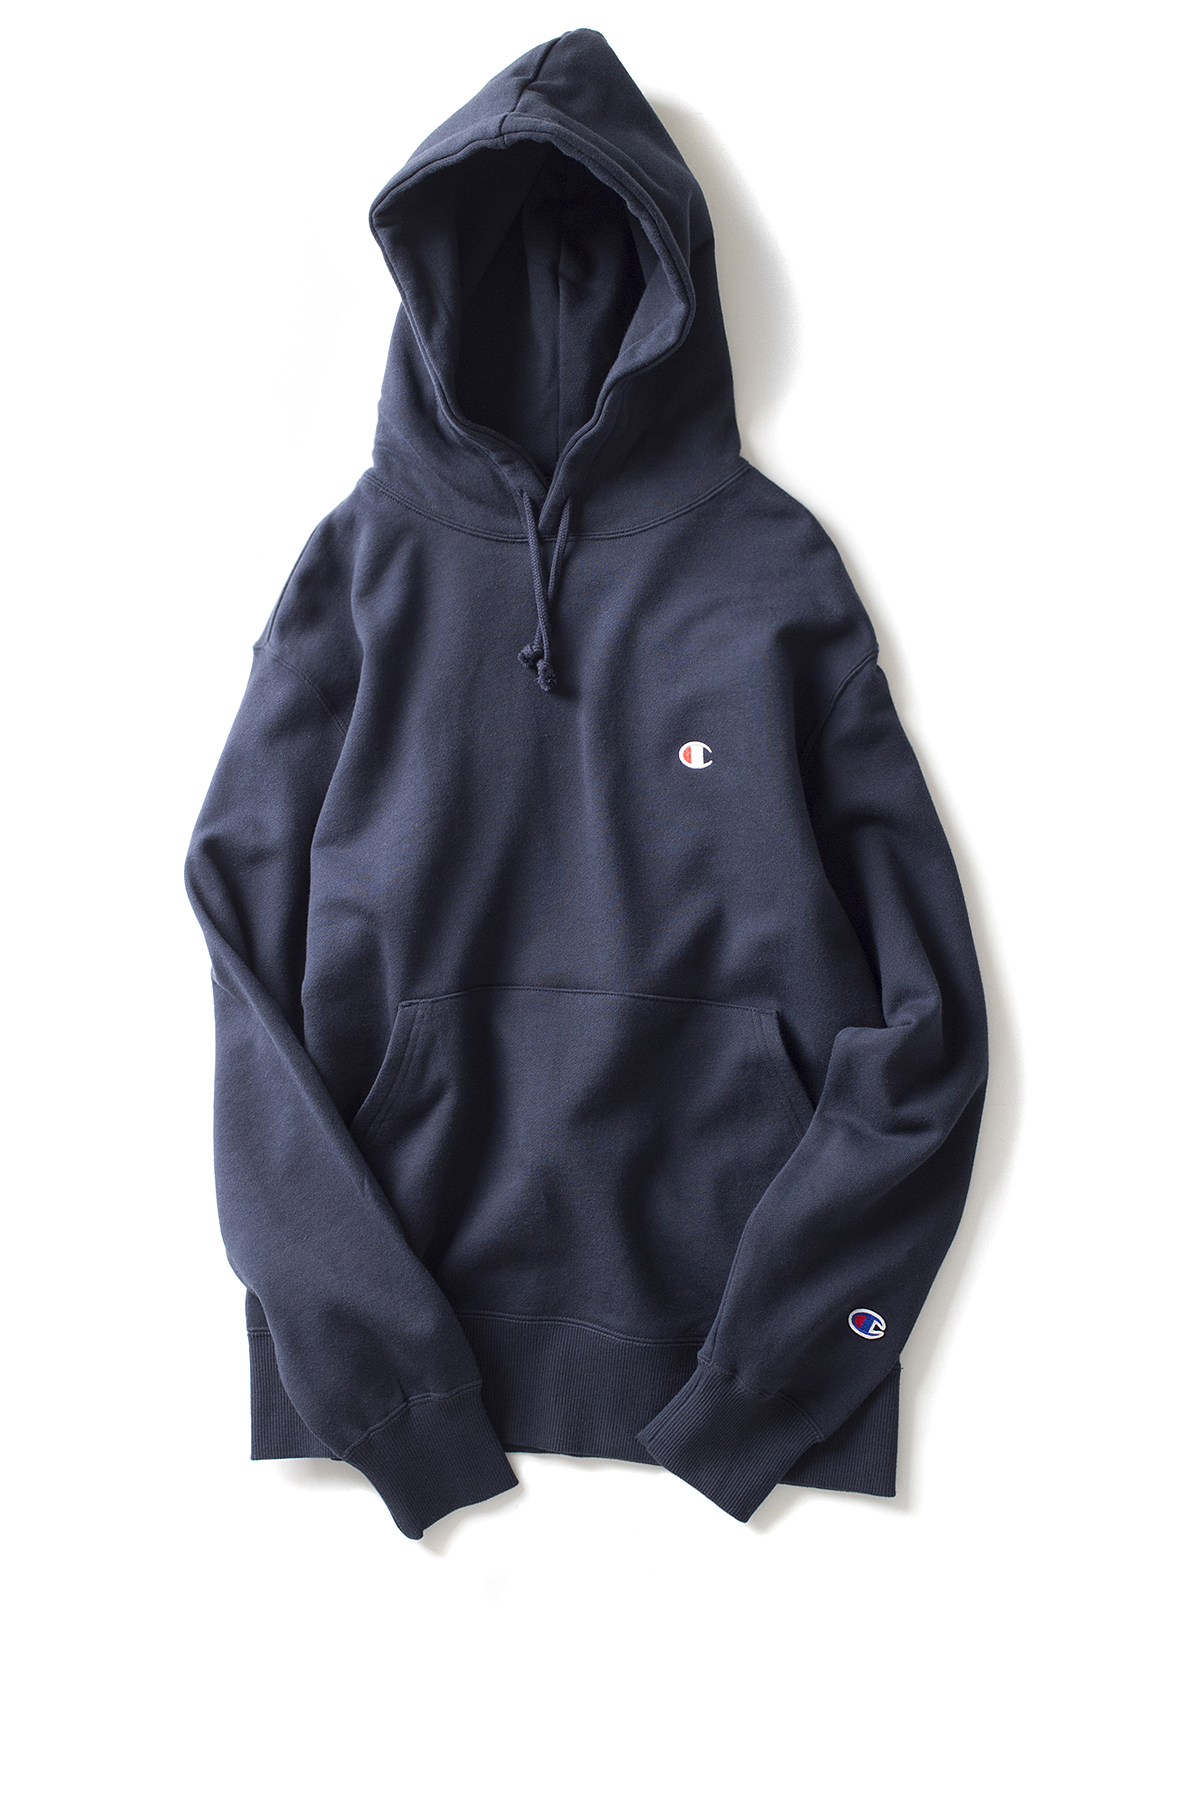 Champion : Basic Pullover Sweatshirt (Navy)